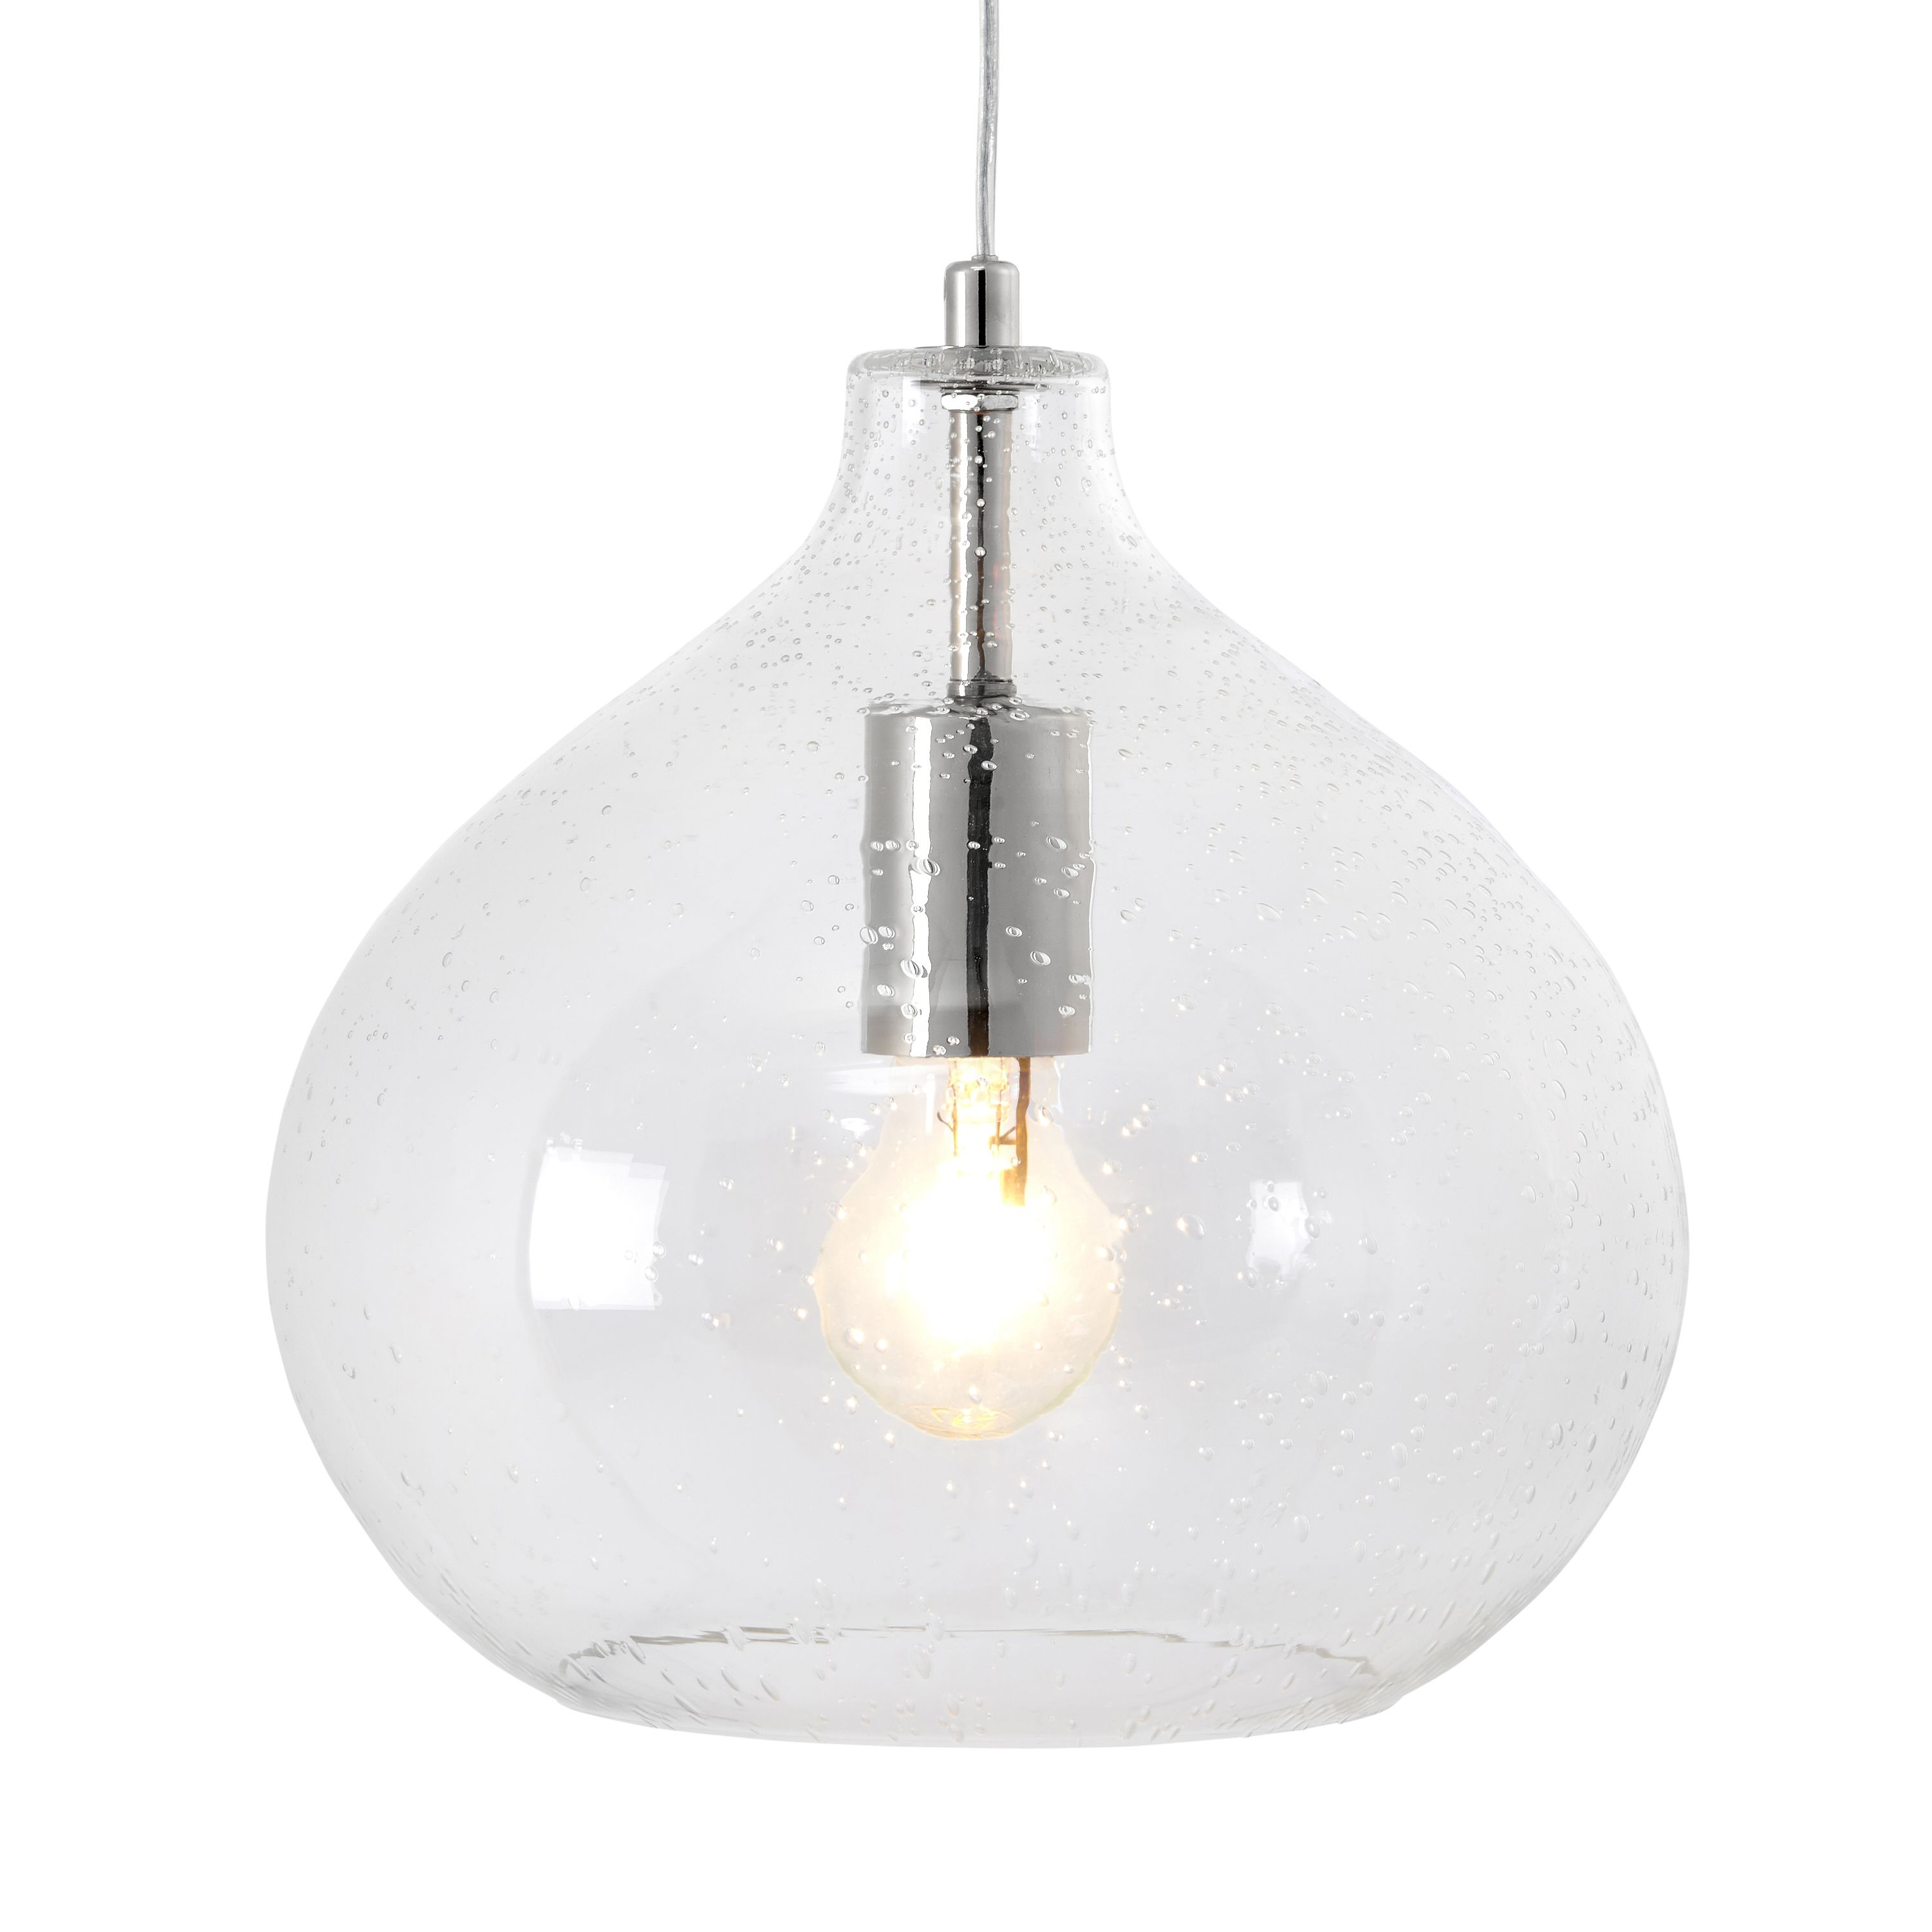 Hester bubble glass pendant ceiling light departments for B q bathroom lights